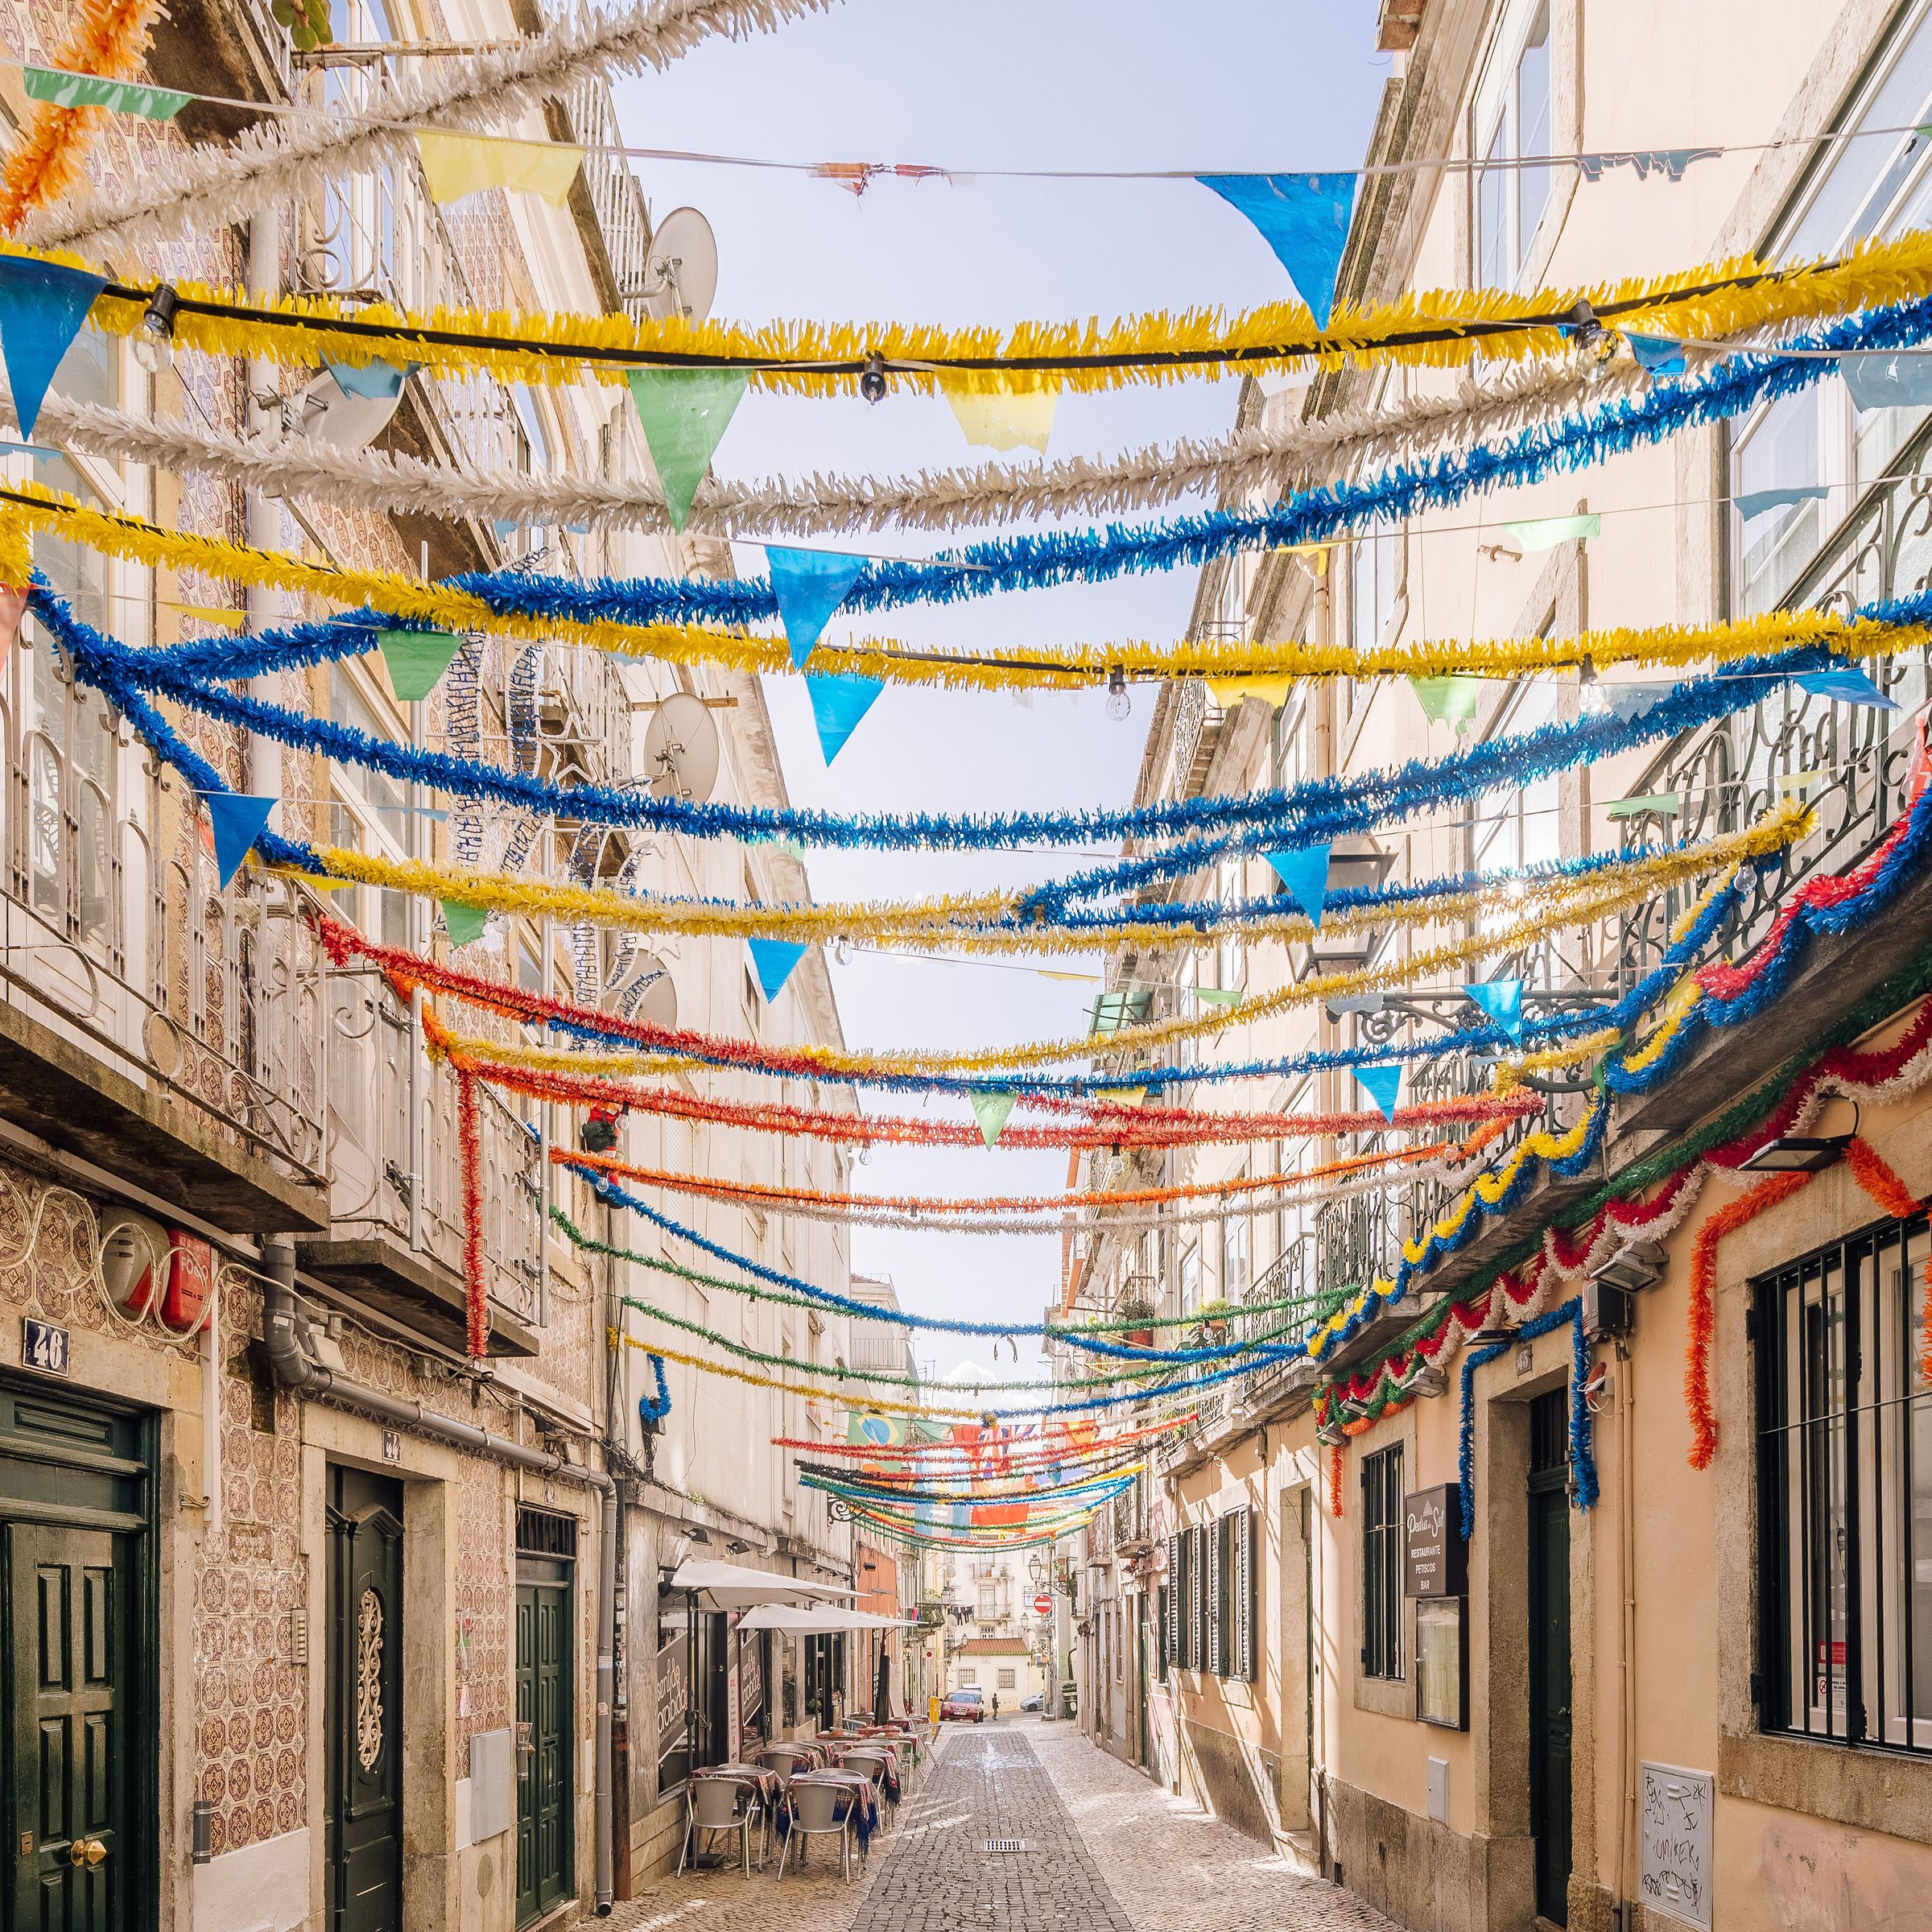 Alleyway in Bairro Alto covered in streamers